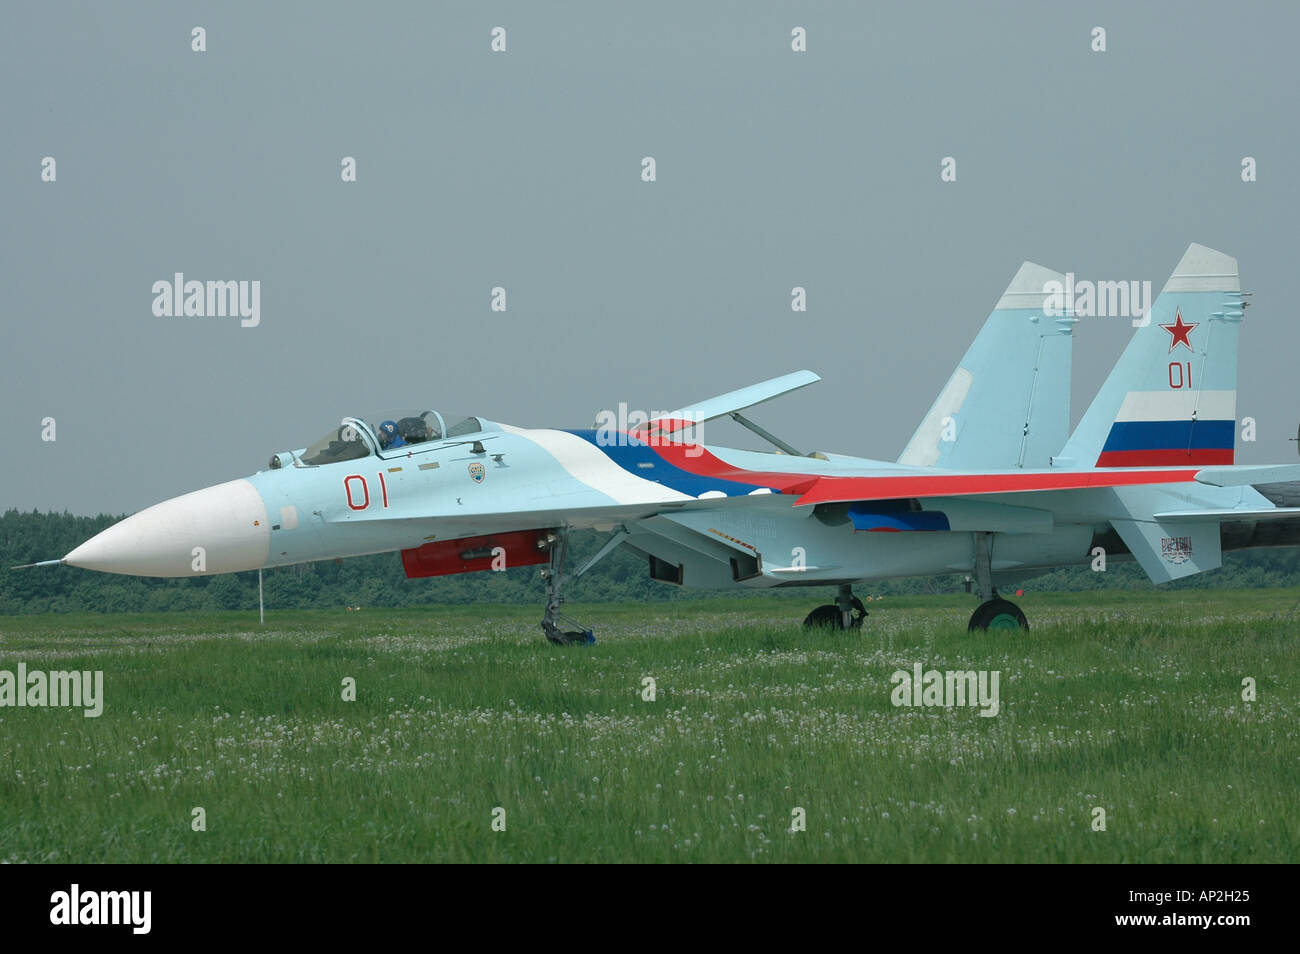 Fighter SU 27 on a runway - Stock Image